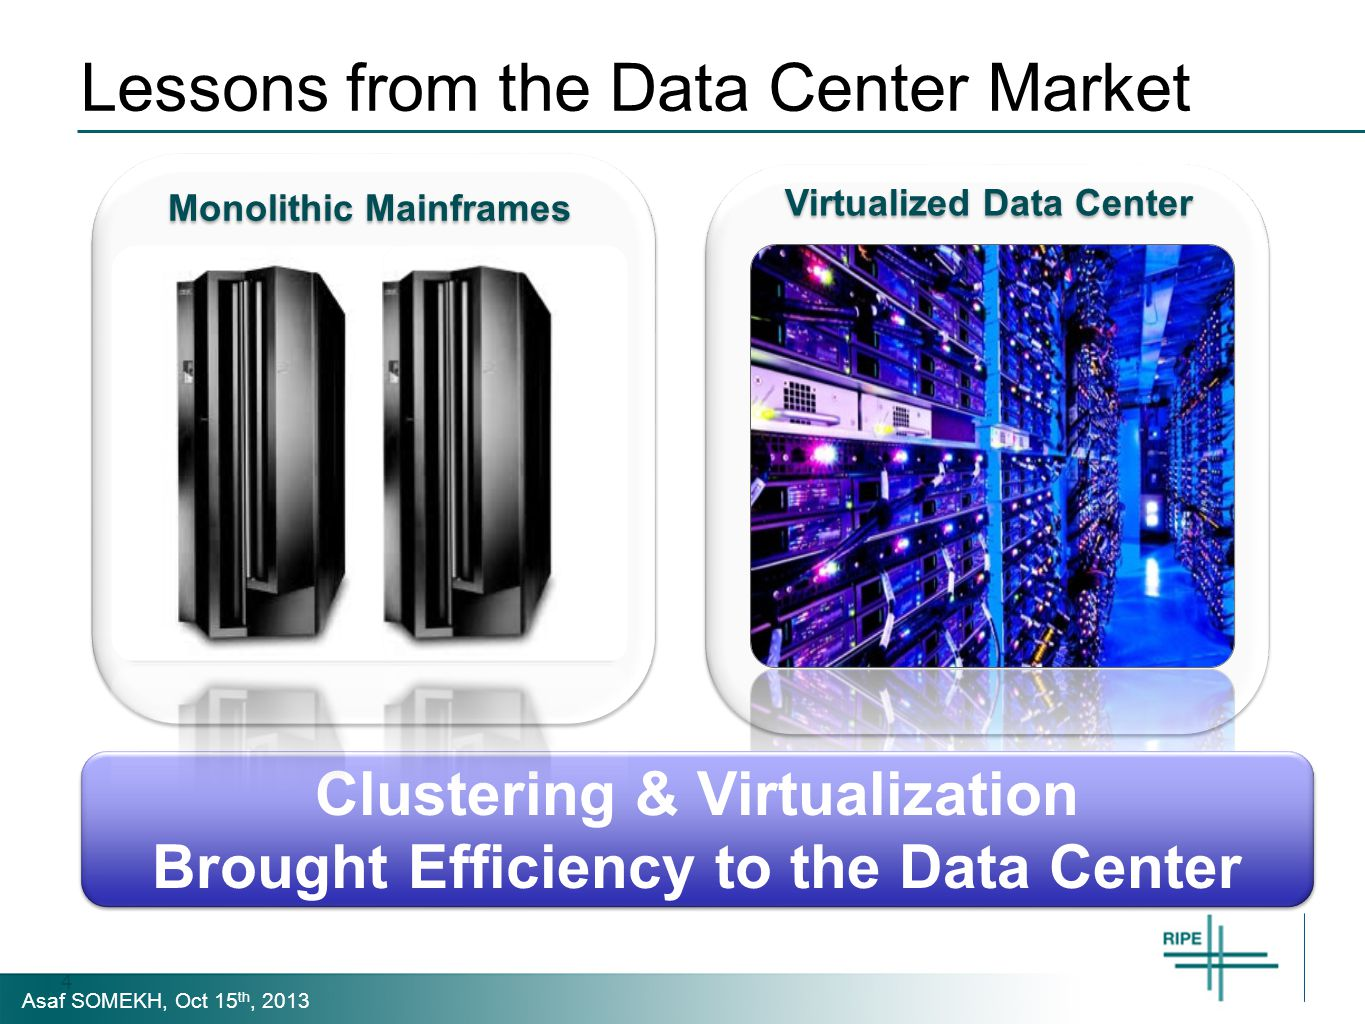 Asaf SOMEKH, Oct 15 th, 2013 Lessons from the Data Center Market Virtualized Data Center Clustering & Virtualization Brought Efficiency to the Data Center Monolithic Mainframes 4